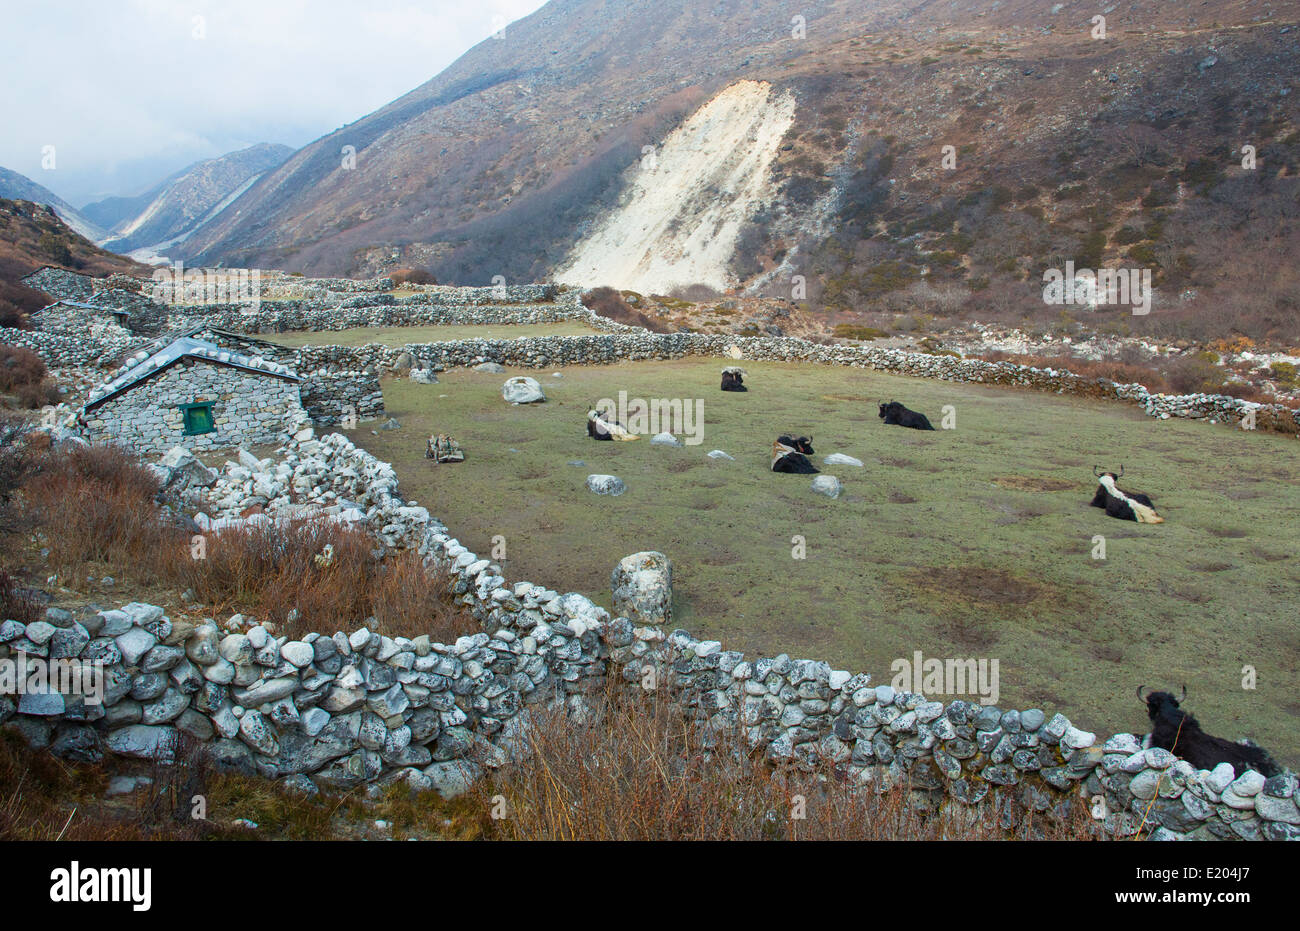 Nepal. Yaks resting in a grass field, near the village of Orsho, Solukhumbu, remote, Mt Everest, Himalayas - Stock Image